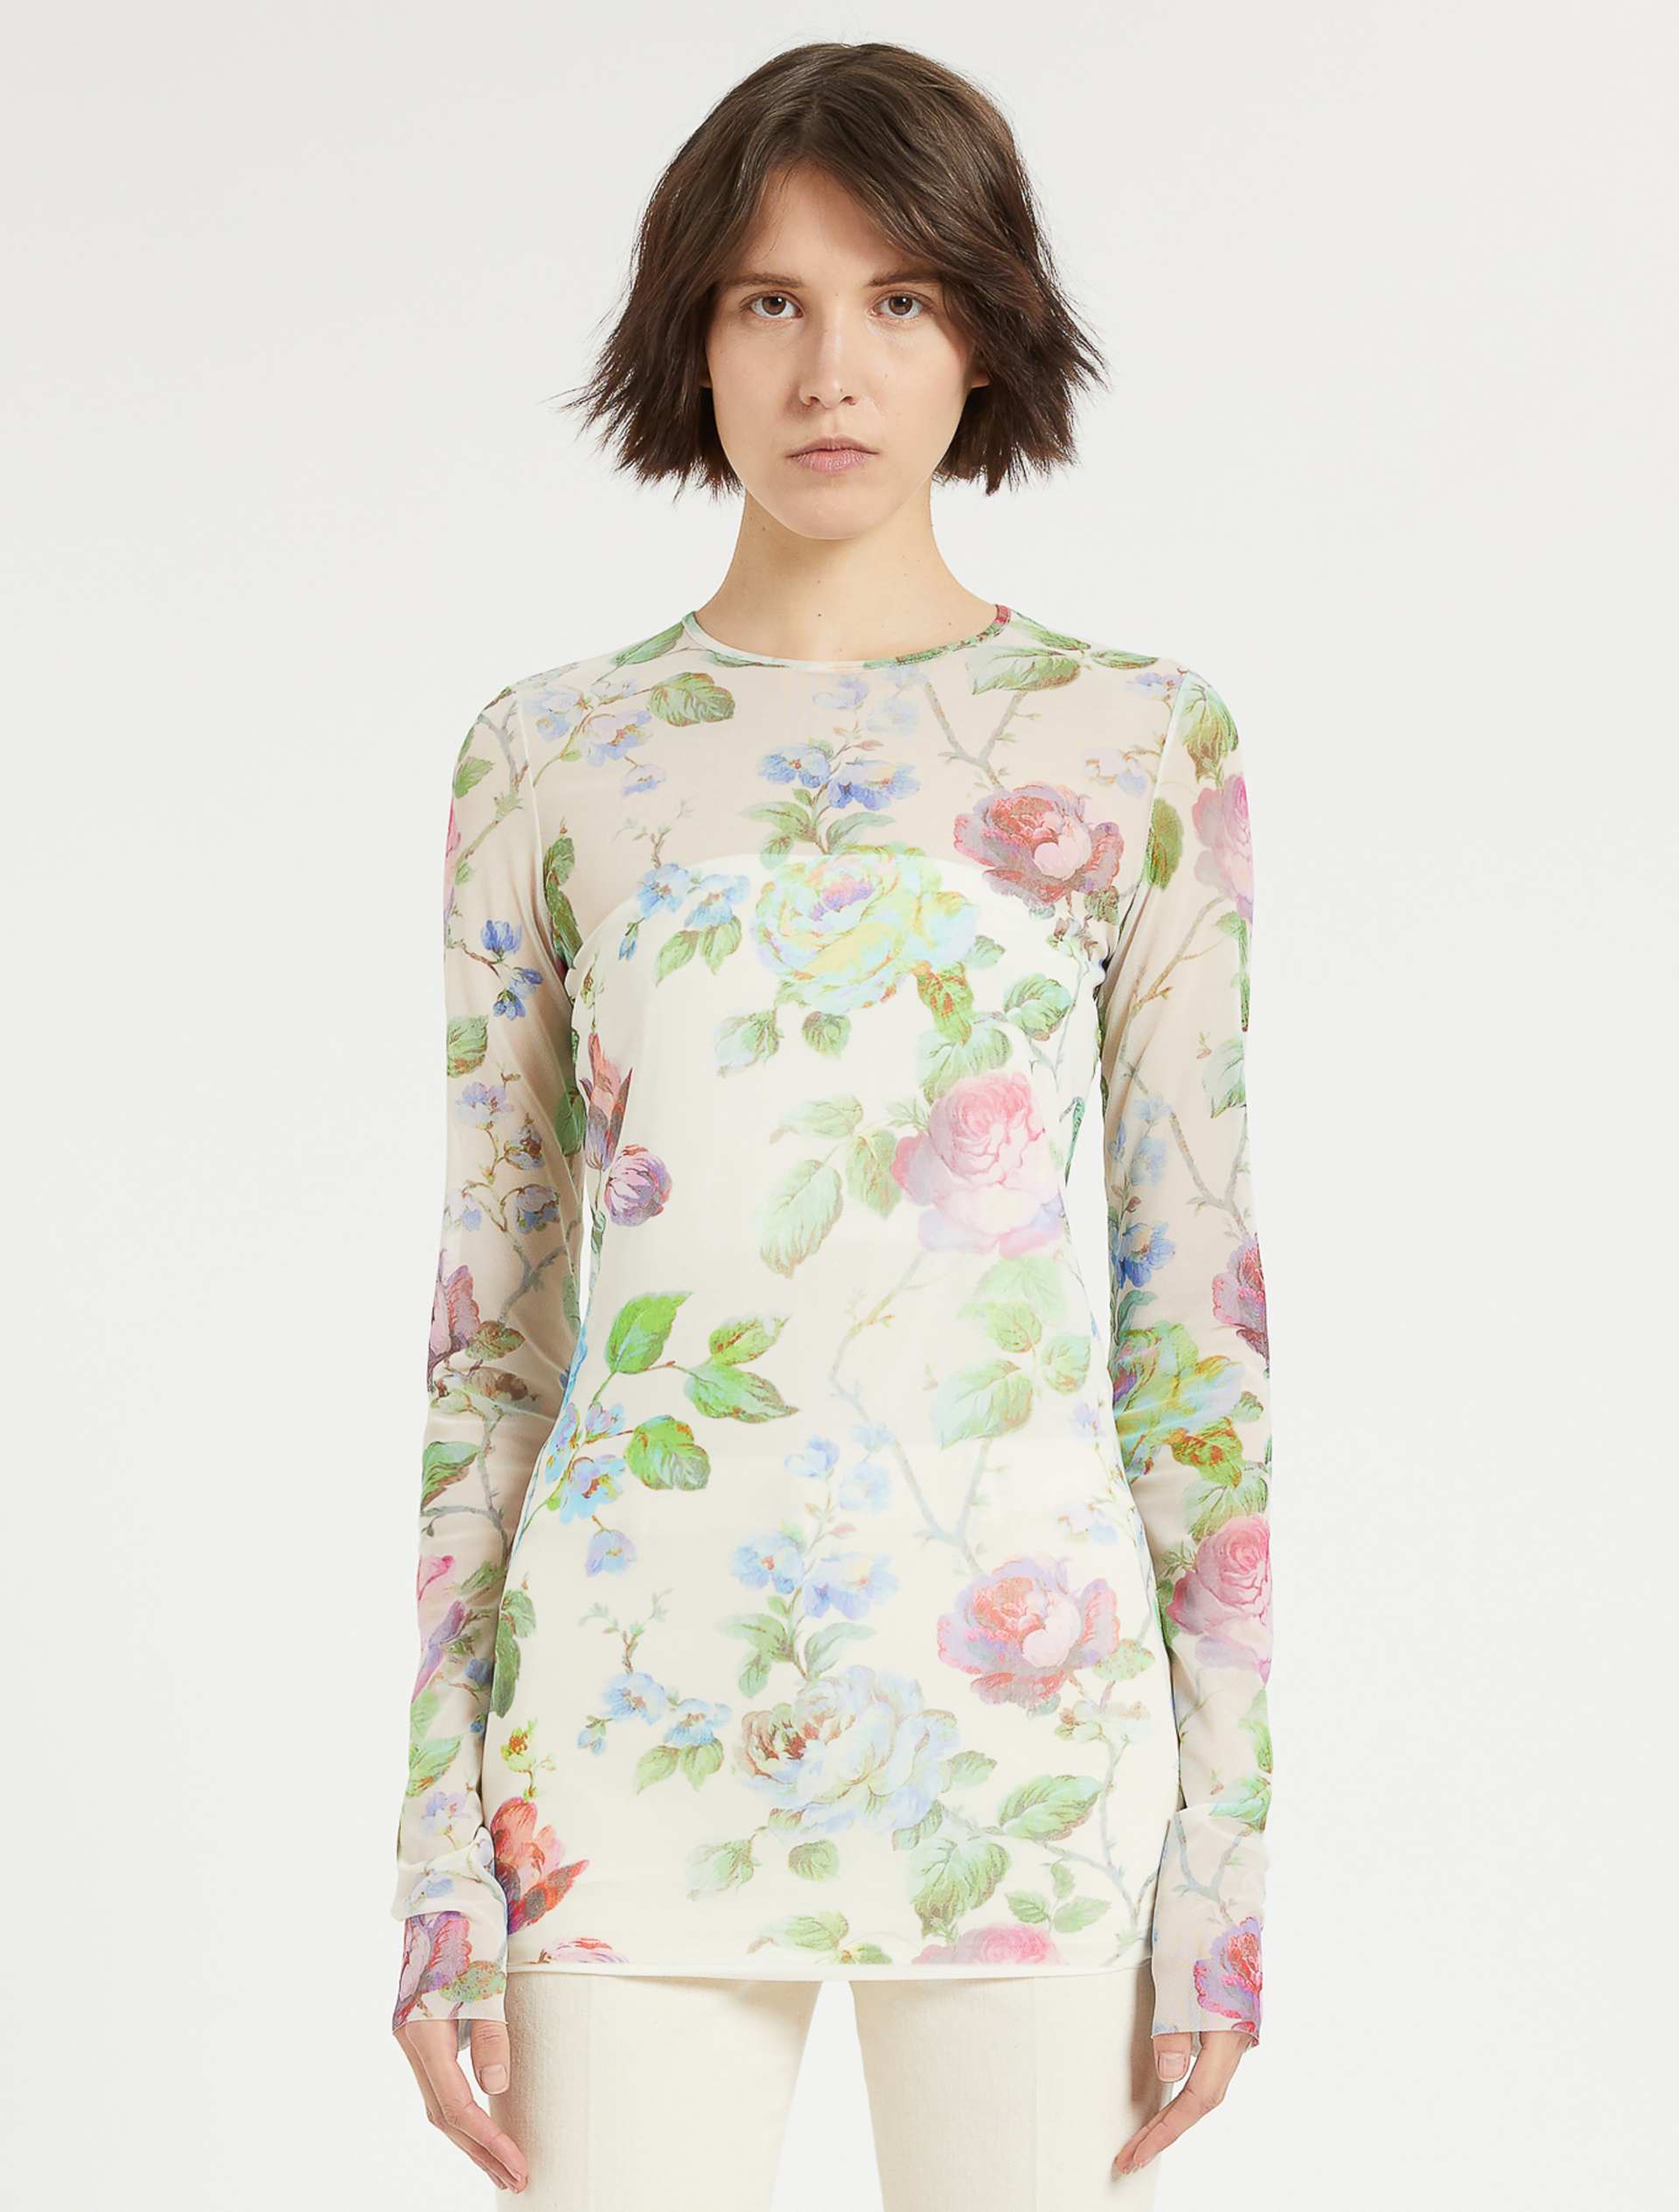 SPORTMAX - T-SHIRT IN TULLE STAMPATO